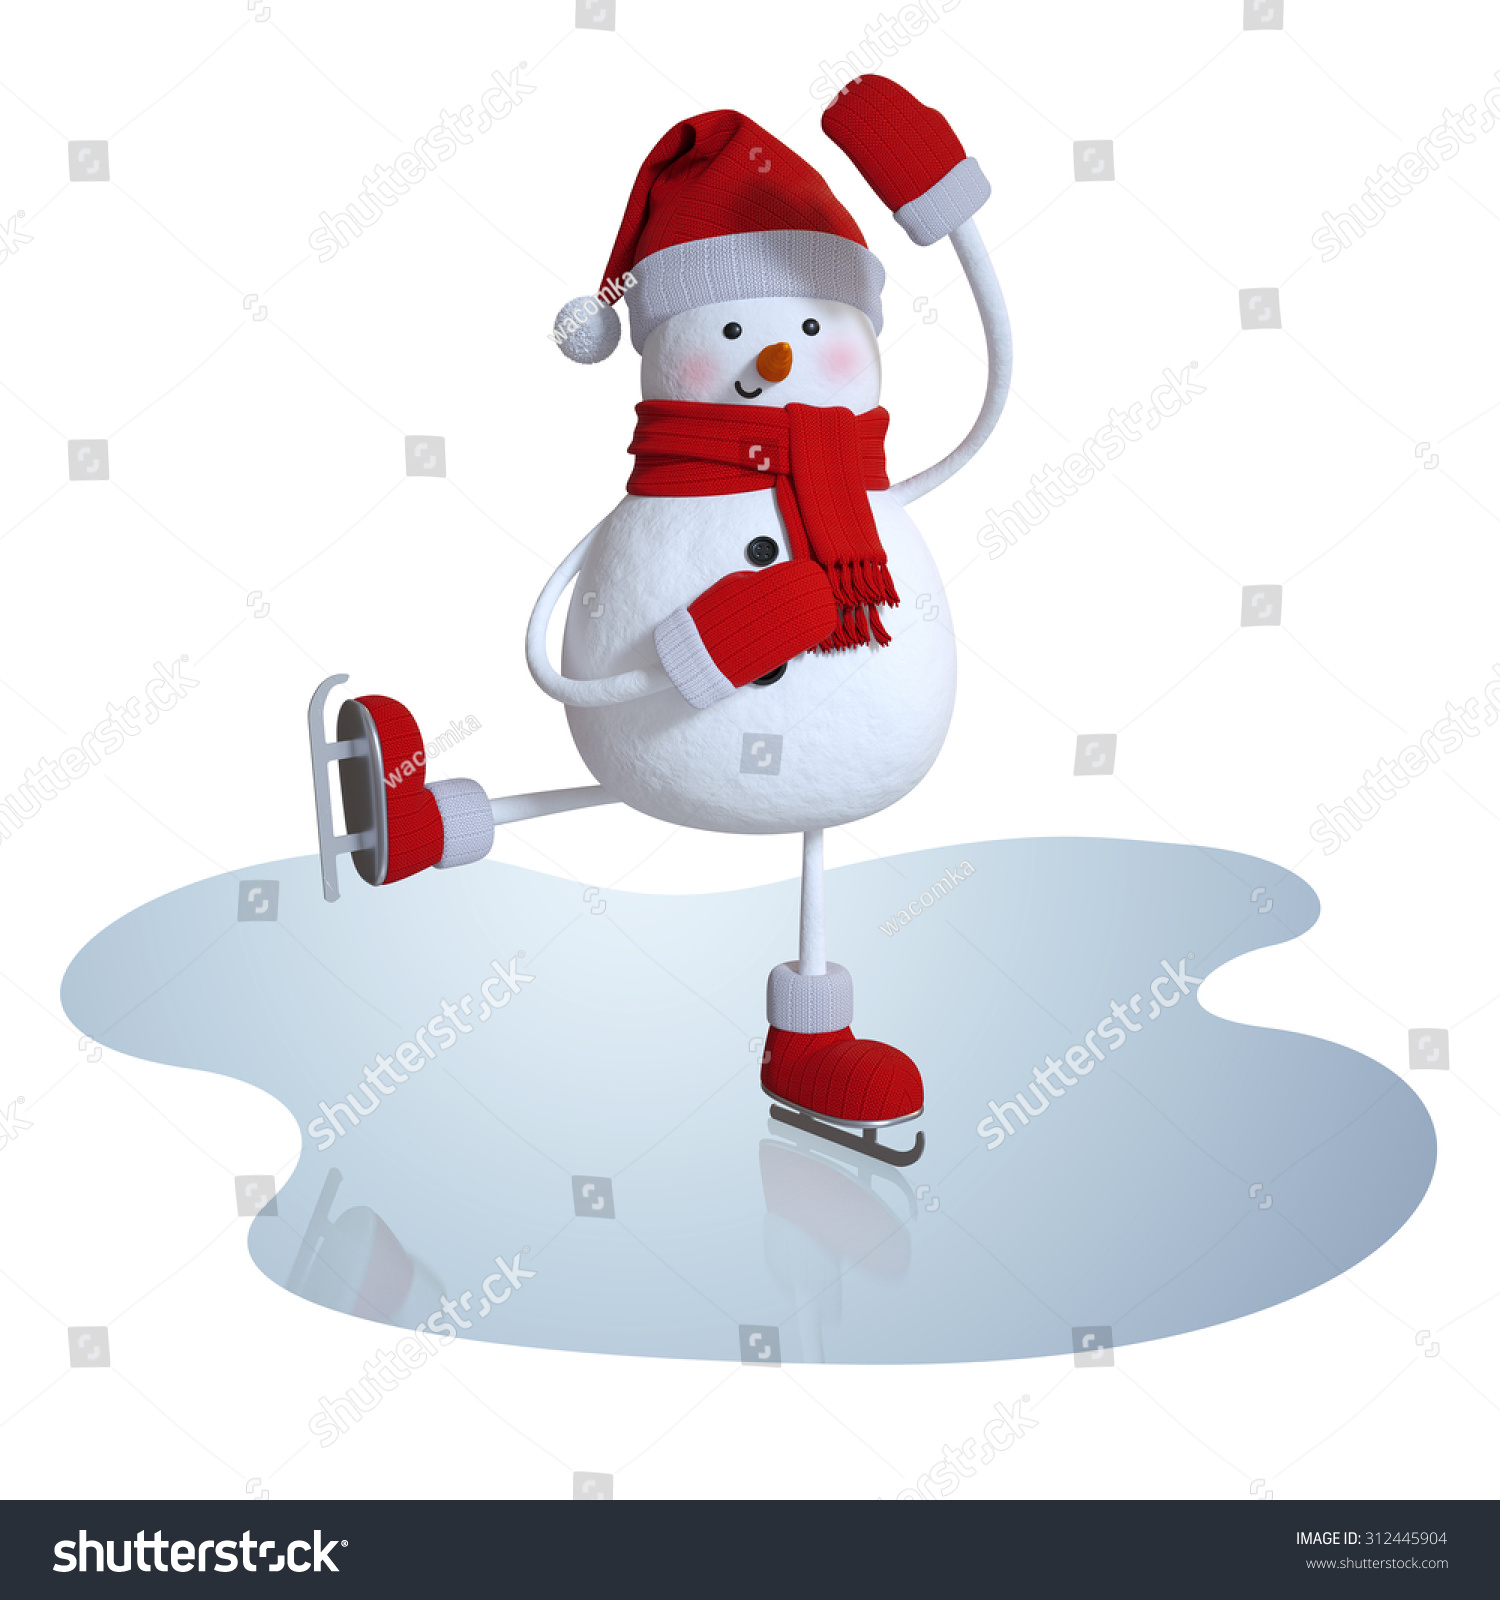 Cute Snowman Figure Skating 3d Character Stock